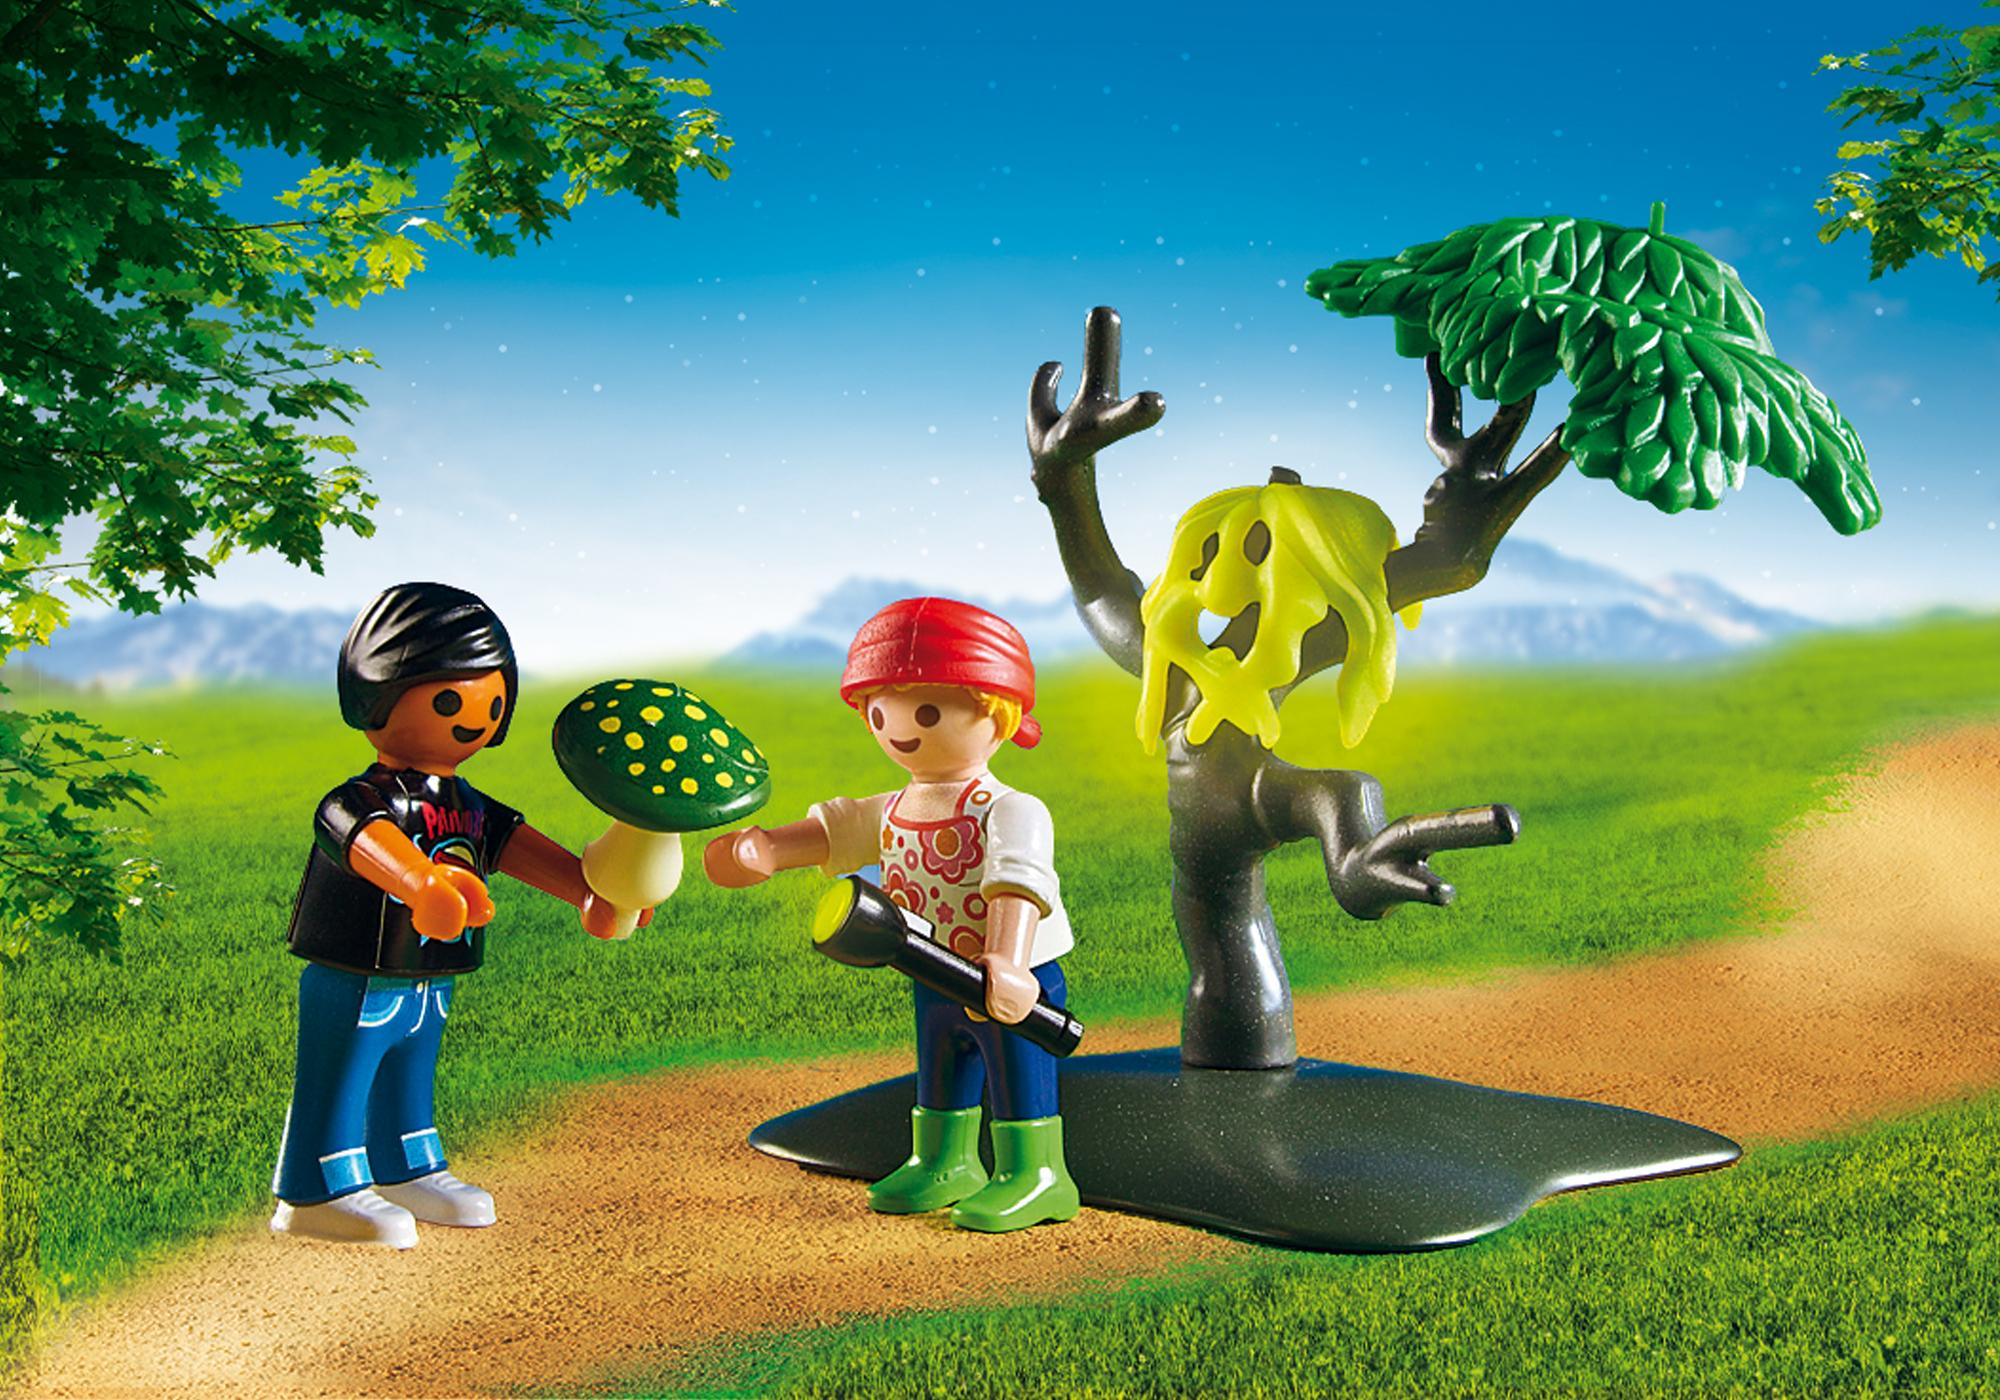 http://media.playmobil.com/i/playmobil/6891_product_extra1